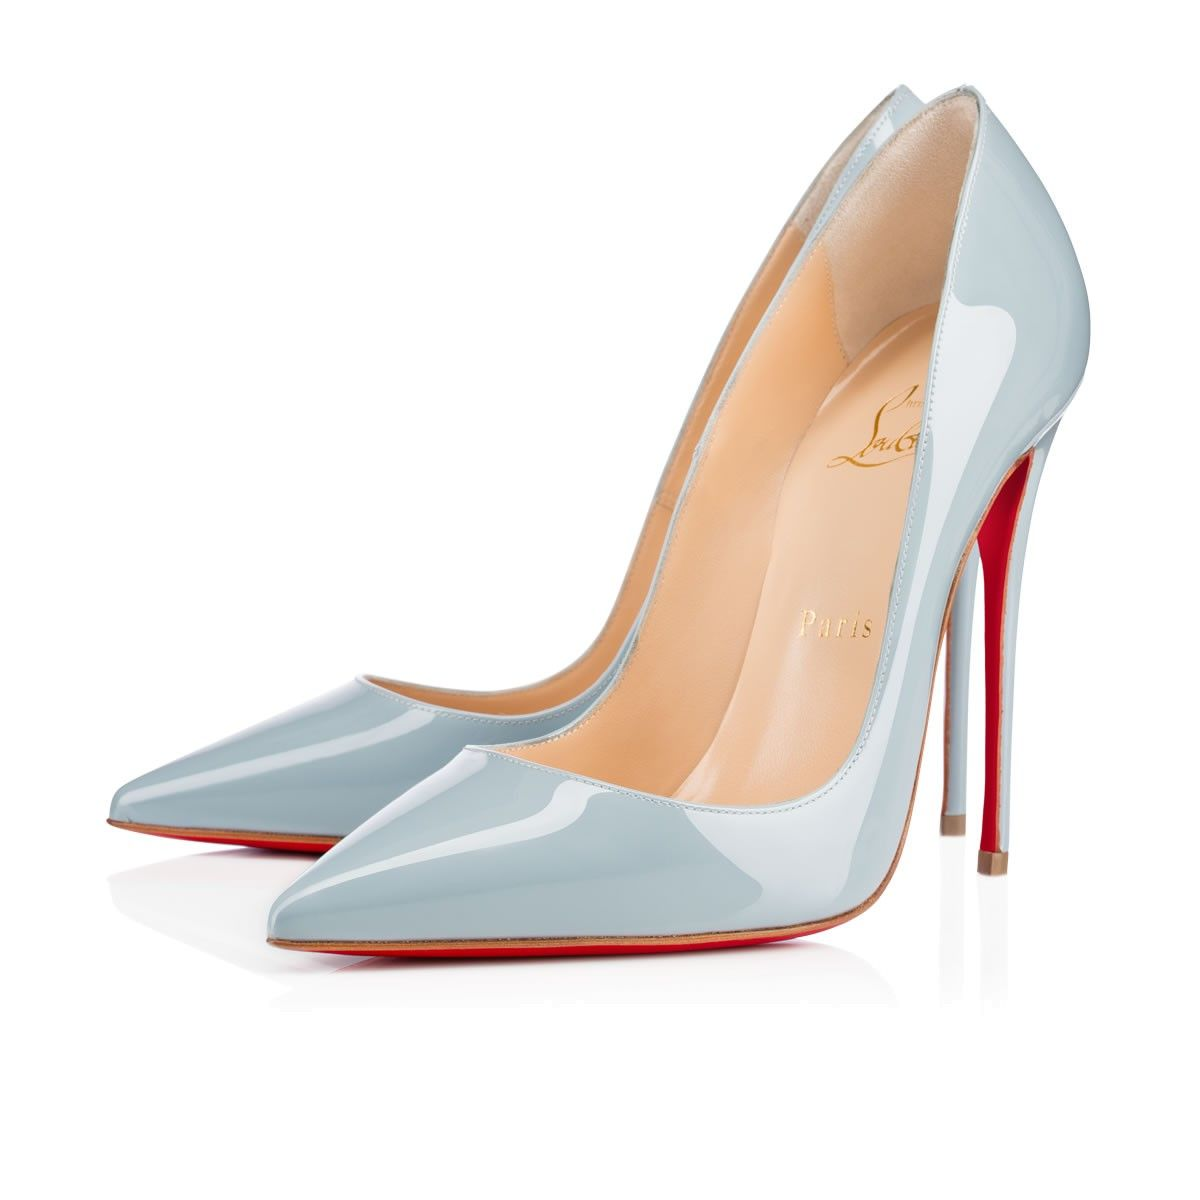 2d84aa6e434 Blue Gray Christian Louboutin Red Bottoms Pointed Toe High Heels in So Kate